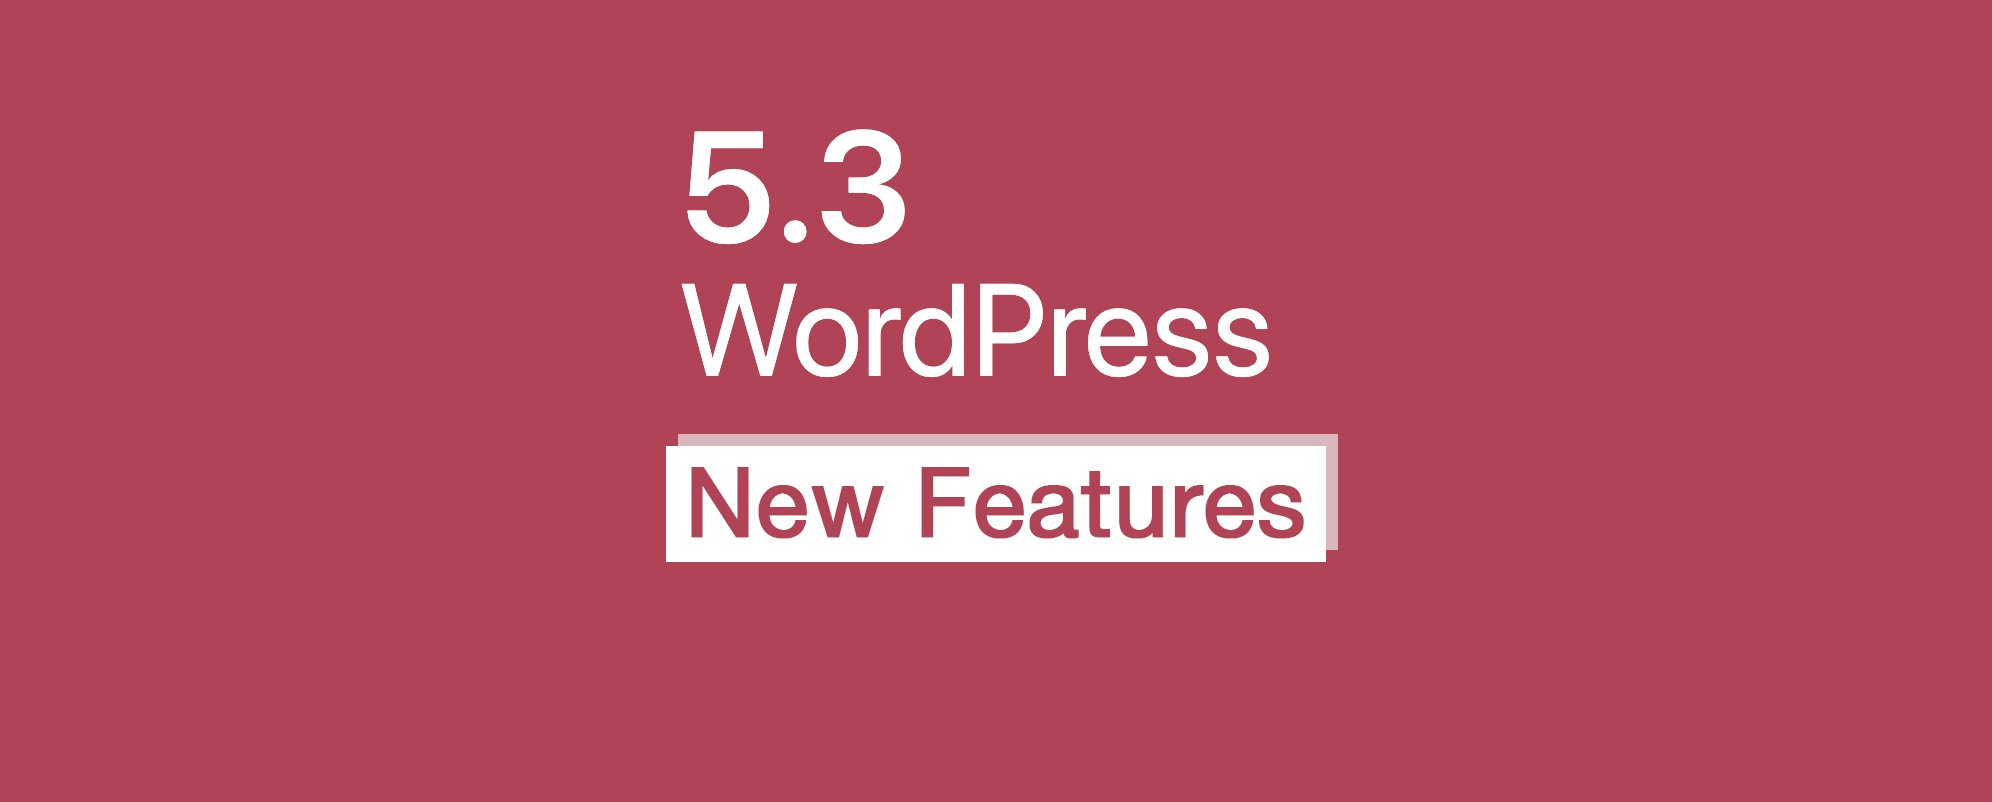 WordPress 5.3 Updates